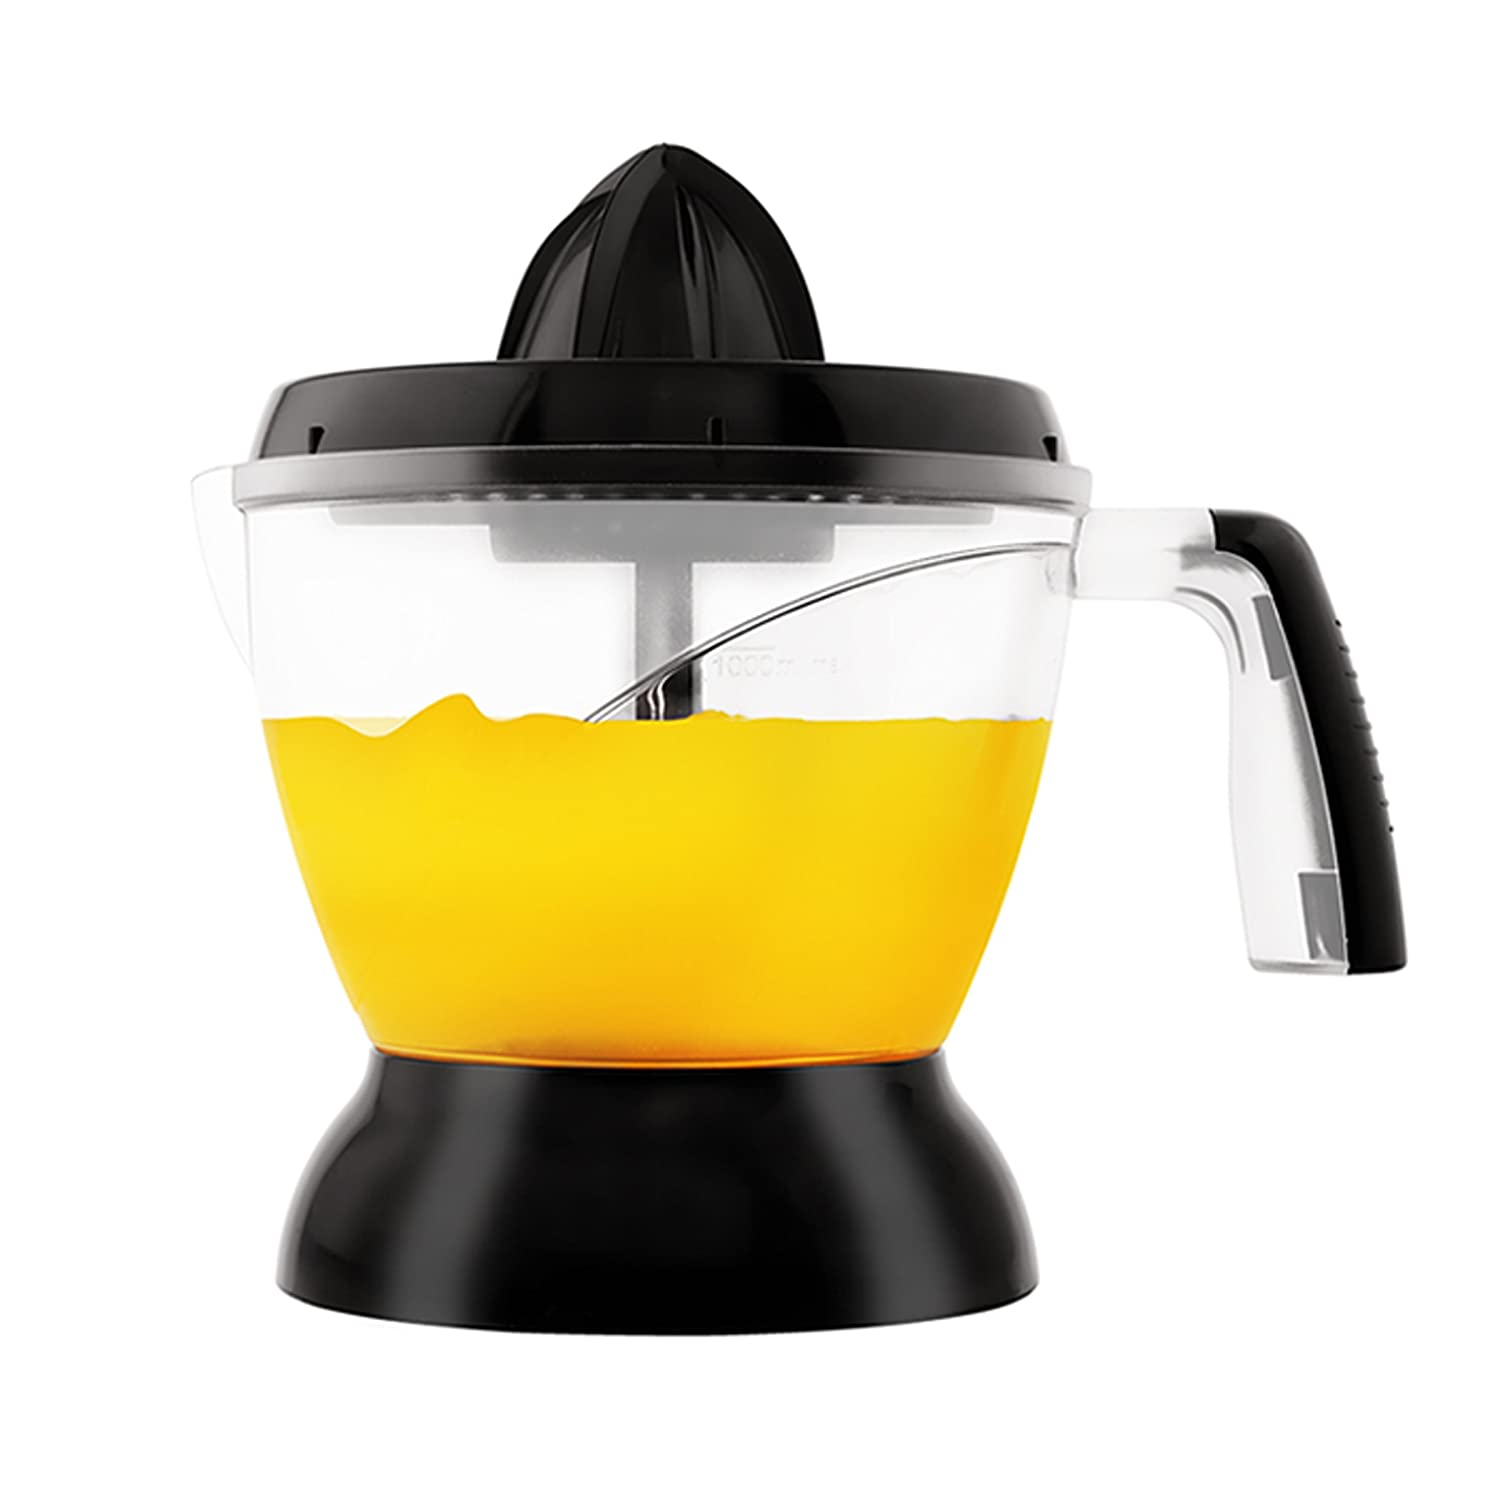 Big Boss 8962 Electric Citrus Juicer, Black, 1,